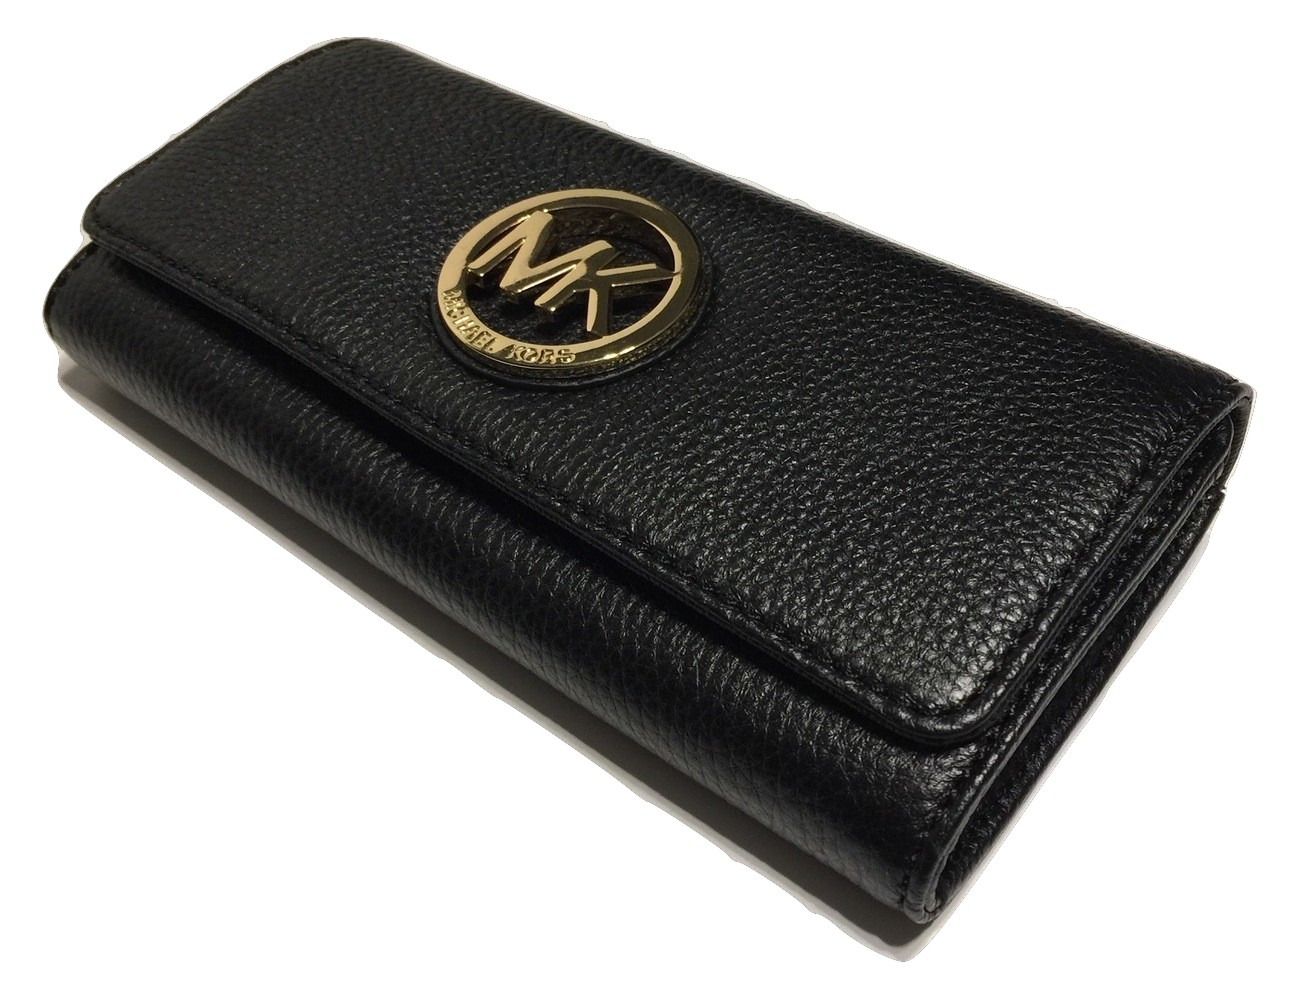 75febe6a575a Michael Kors Fulton Flap Continental Clutch Wallet Black Leather